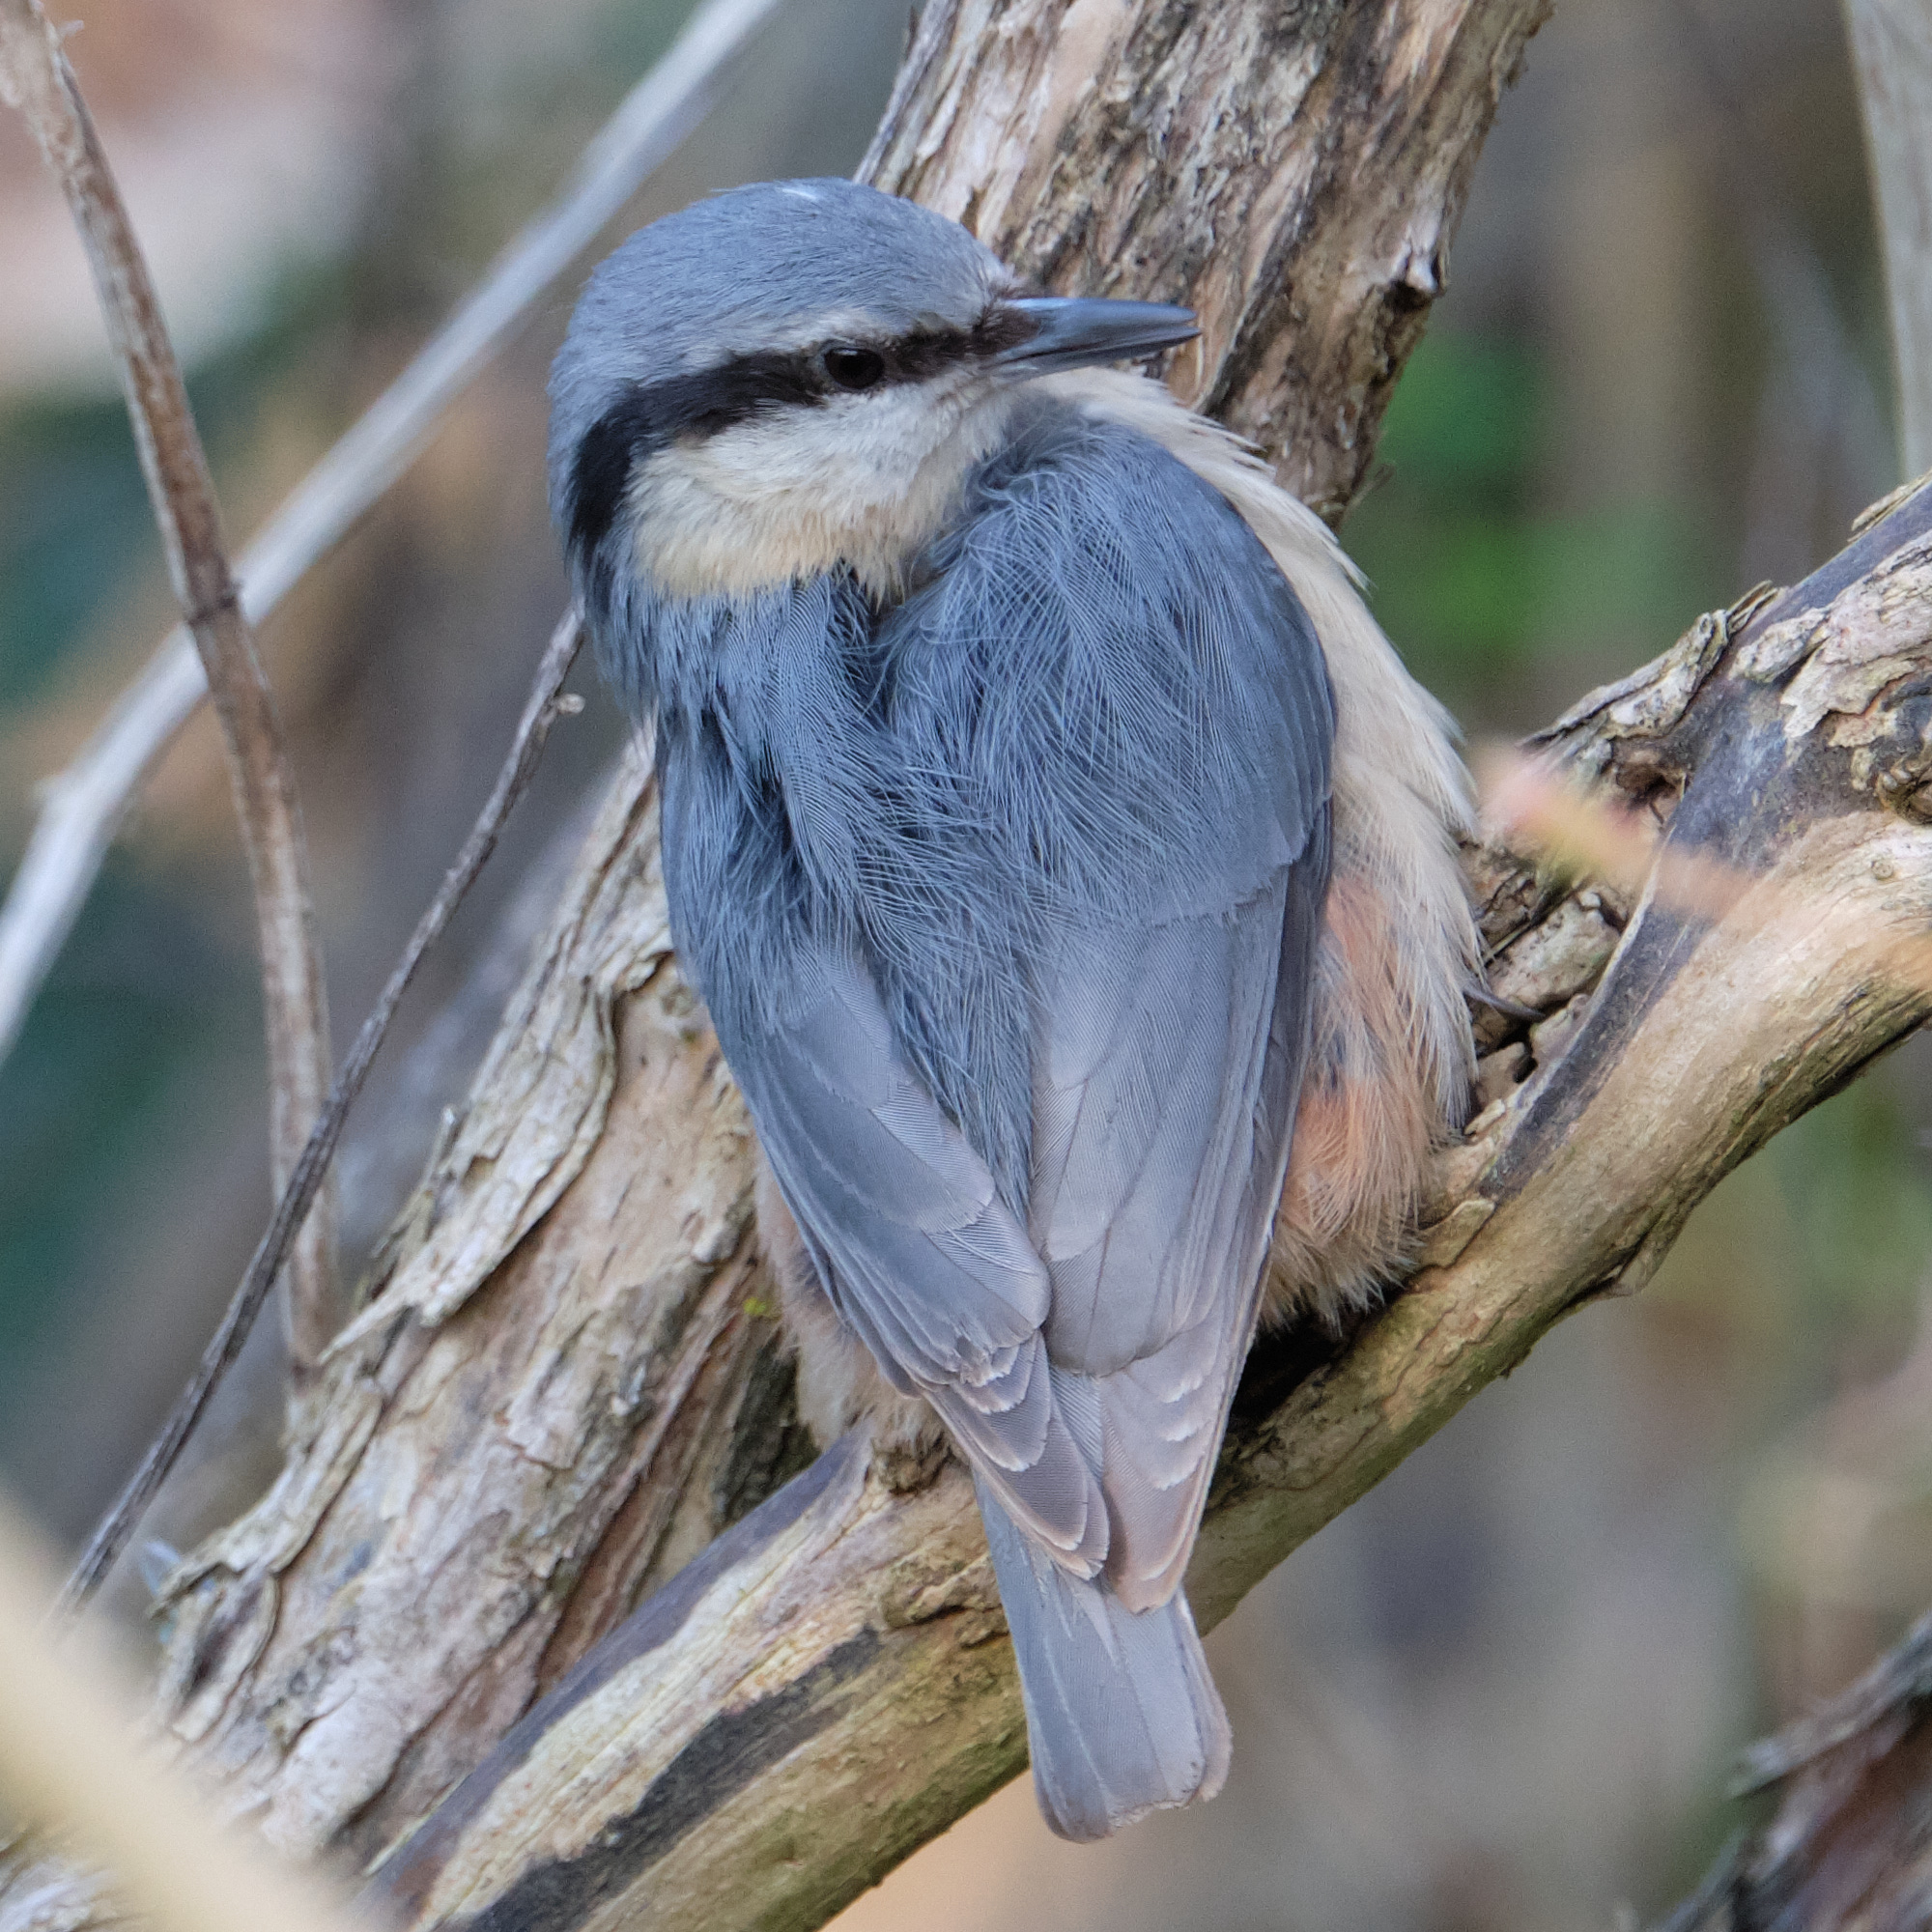 junger Kleiber / young nuthatch